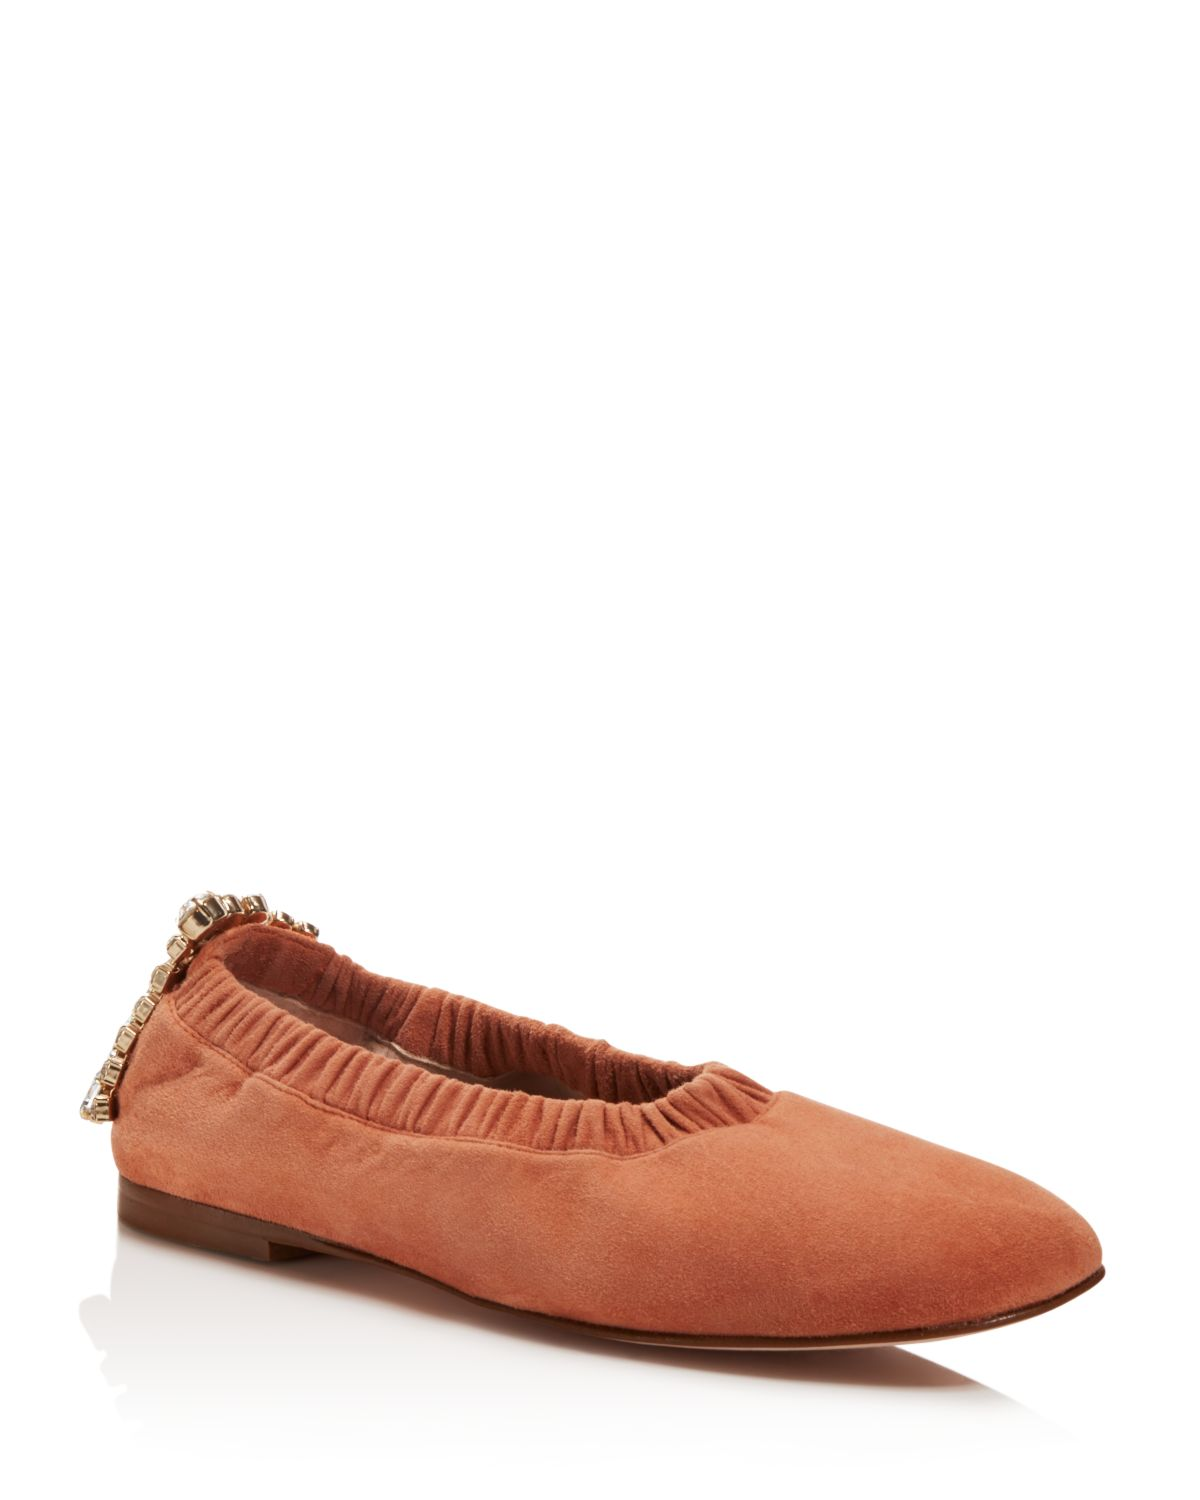 Stuart Weitzman Embellished Square-Toe Loafers